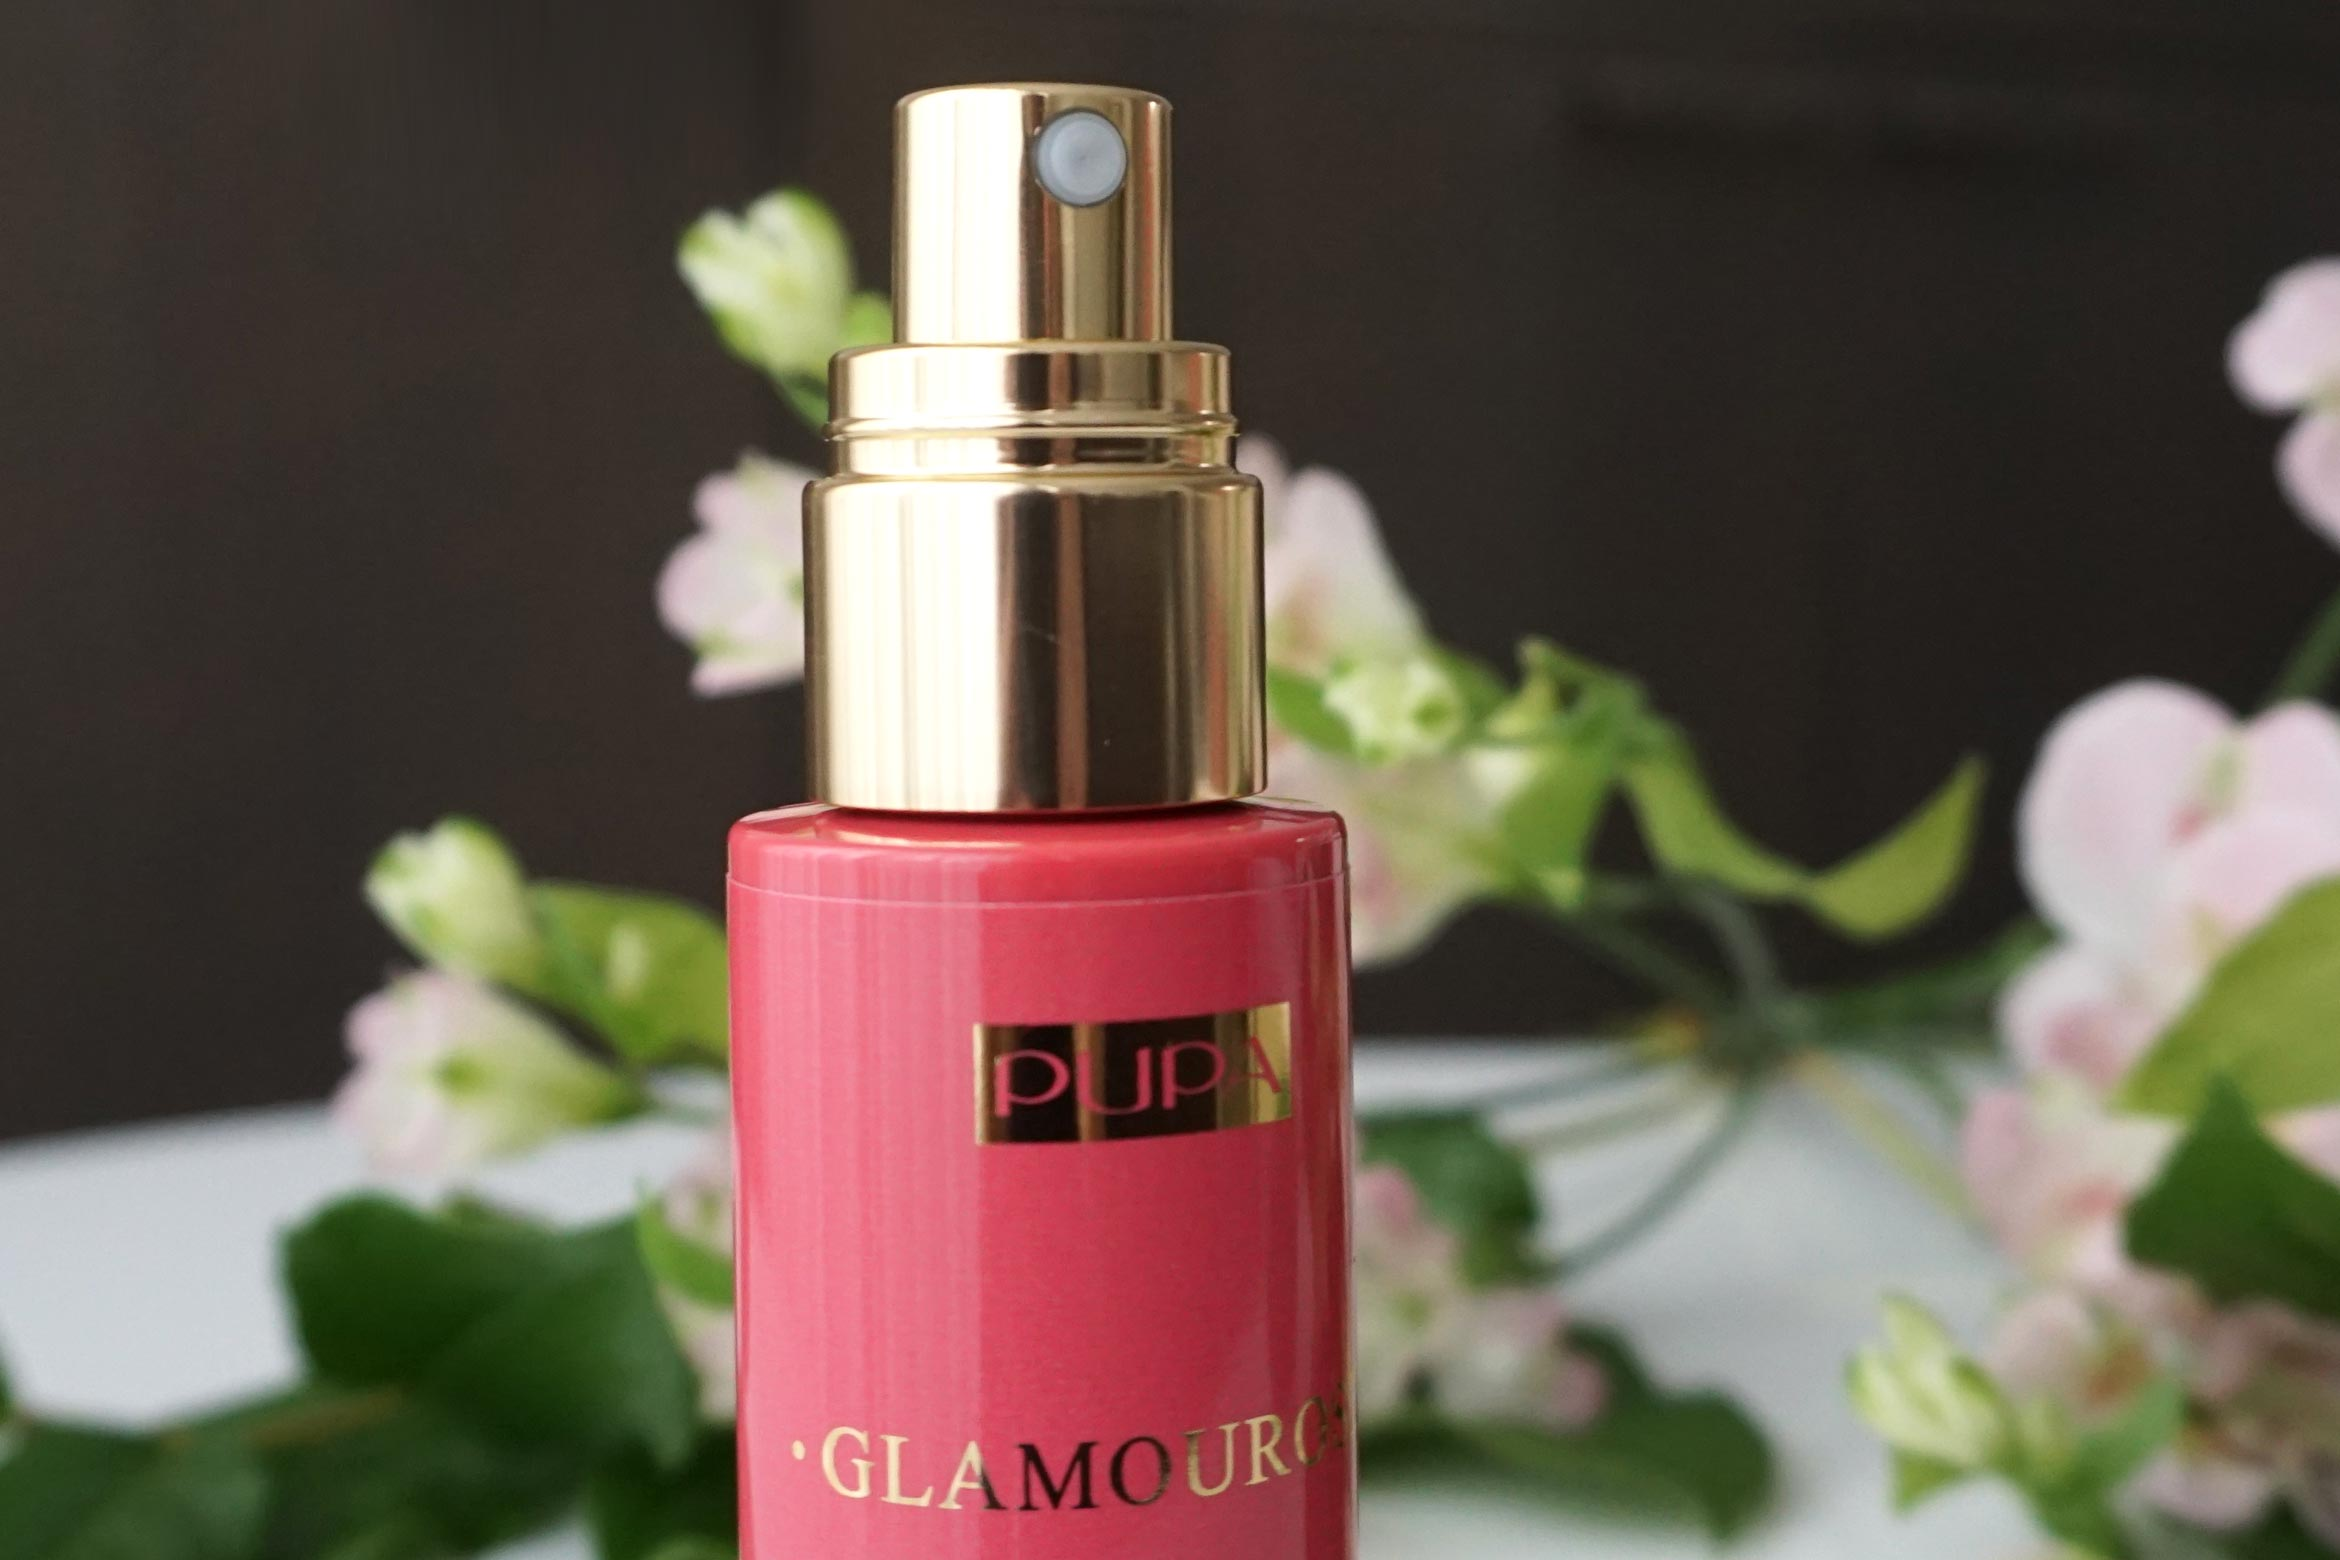 Pupa-Glamourose--make-up-fixer-review-1